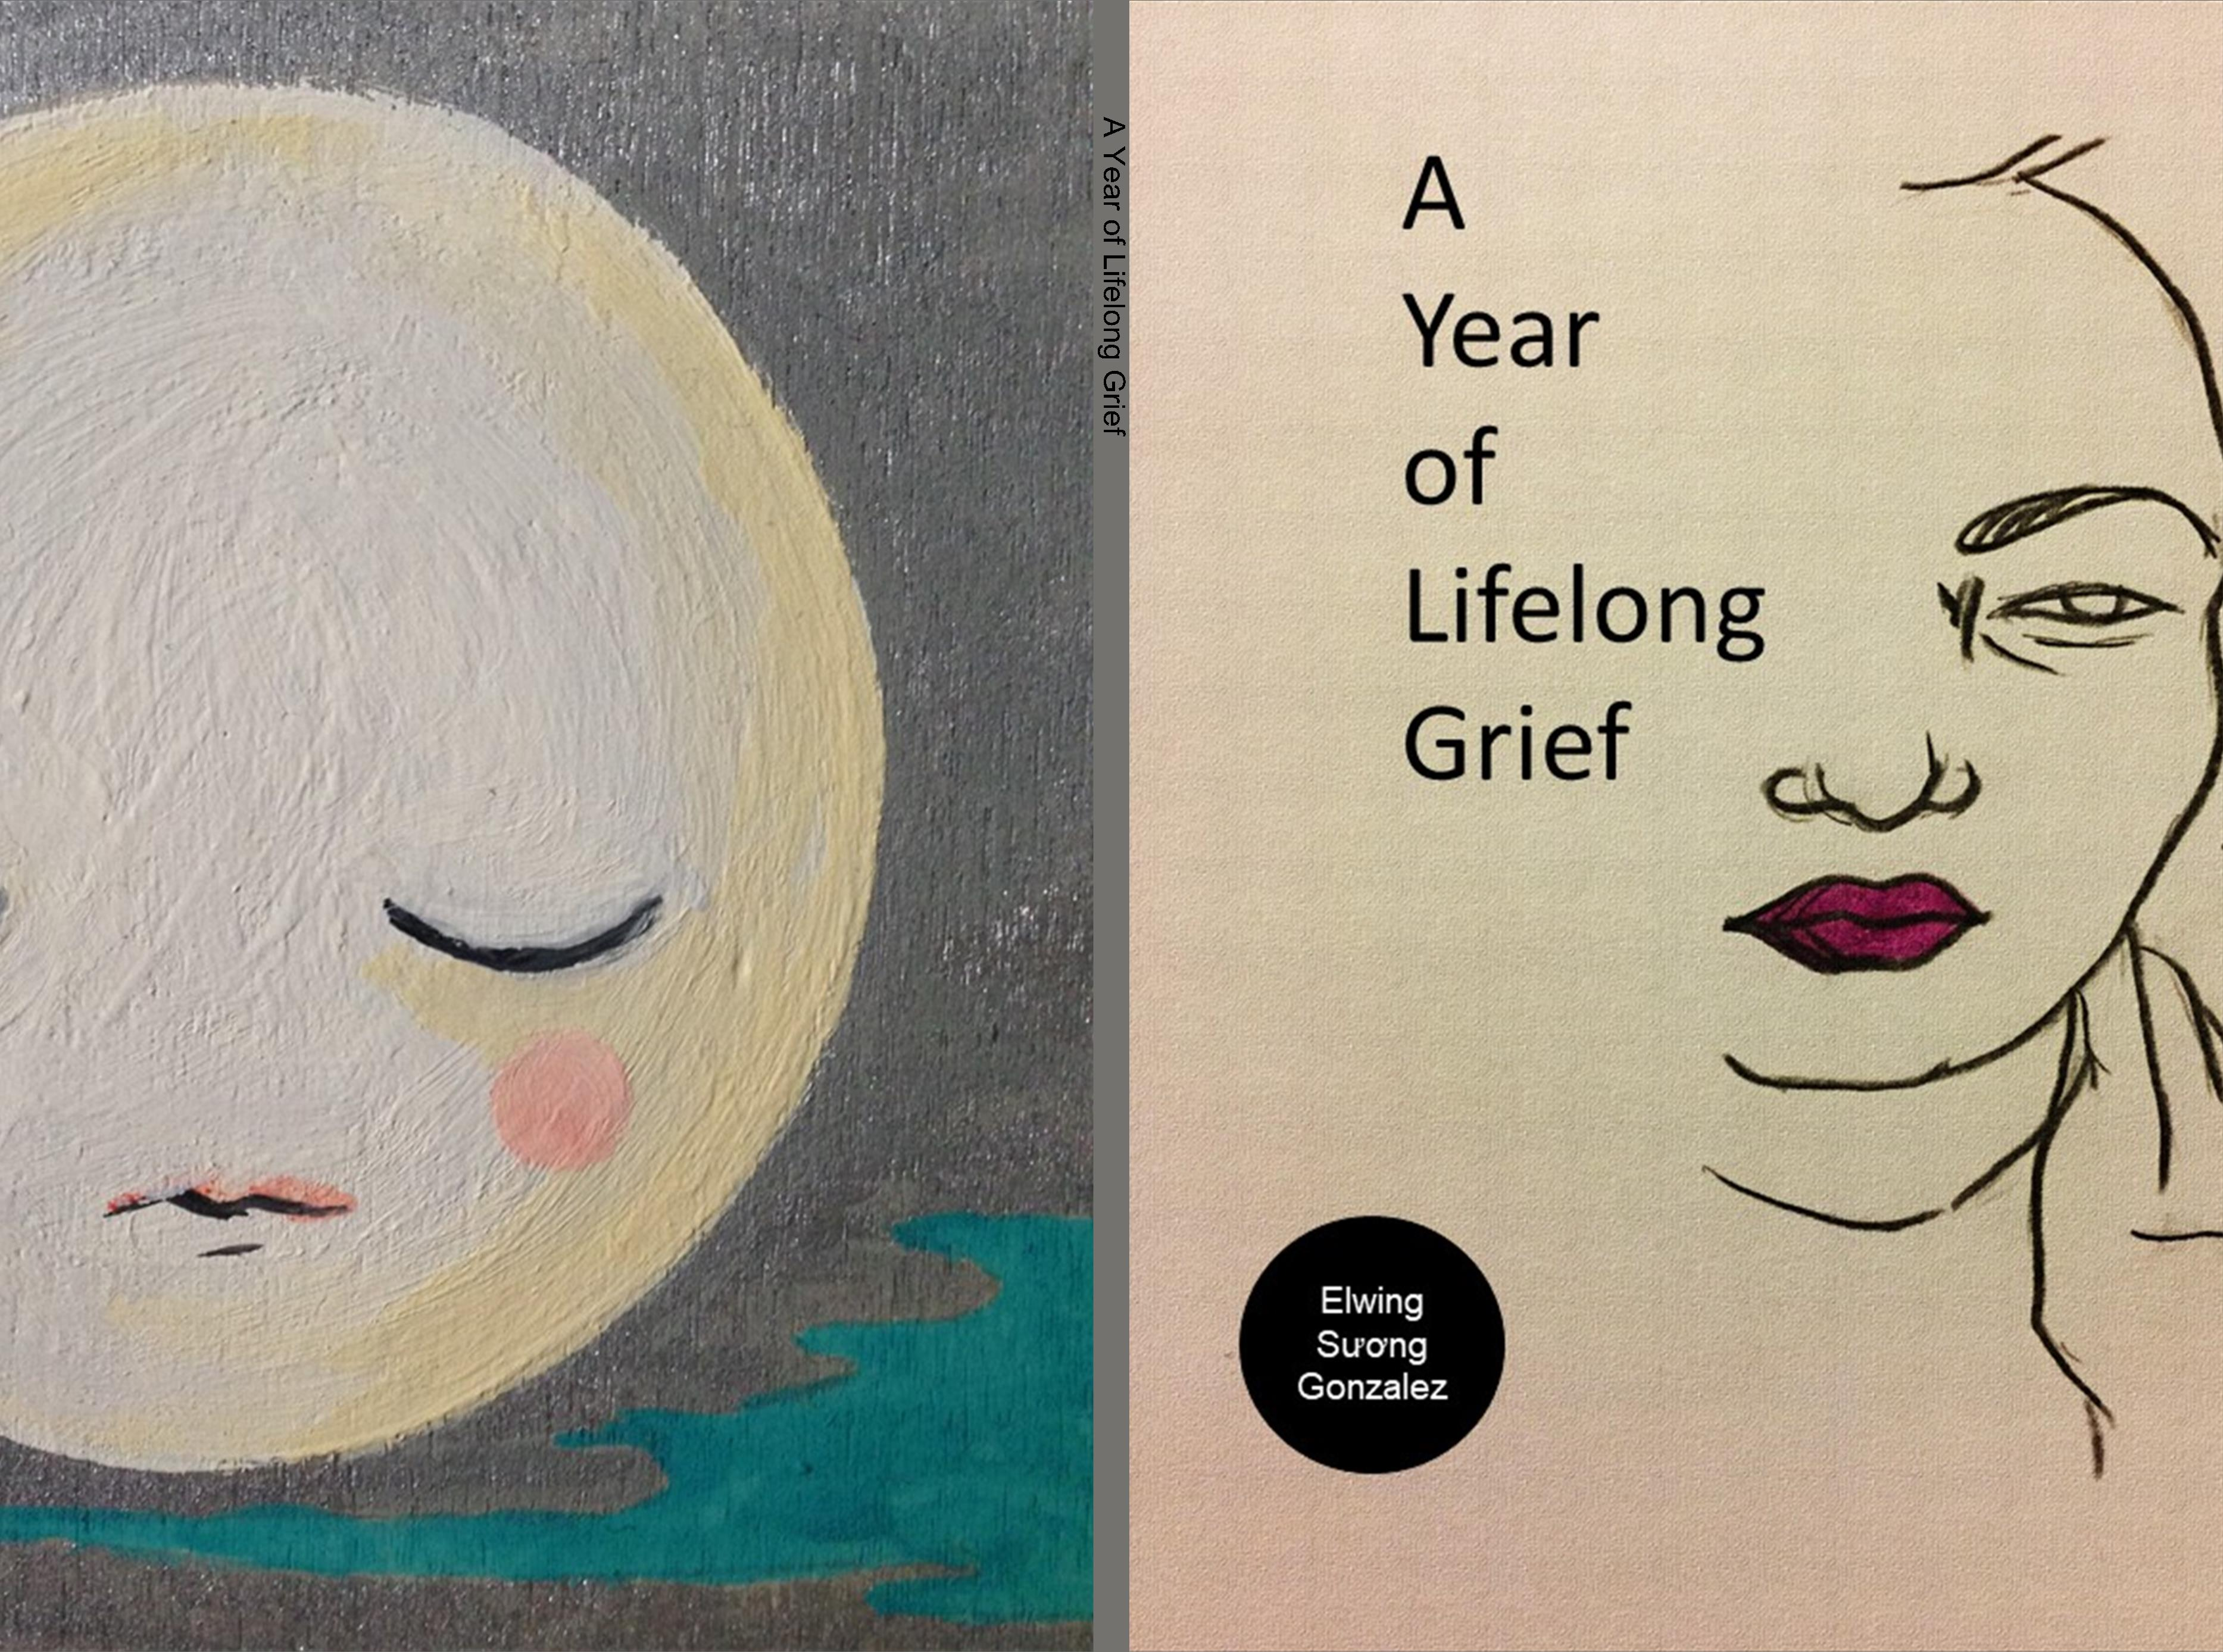 A Year of Lifelong Grief cover image